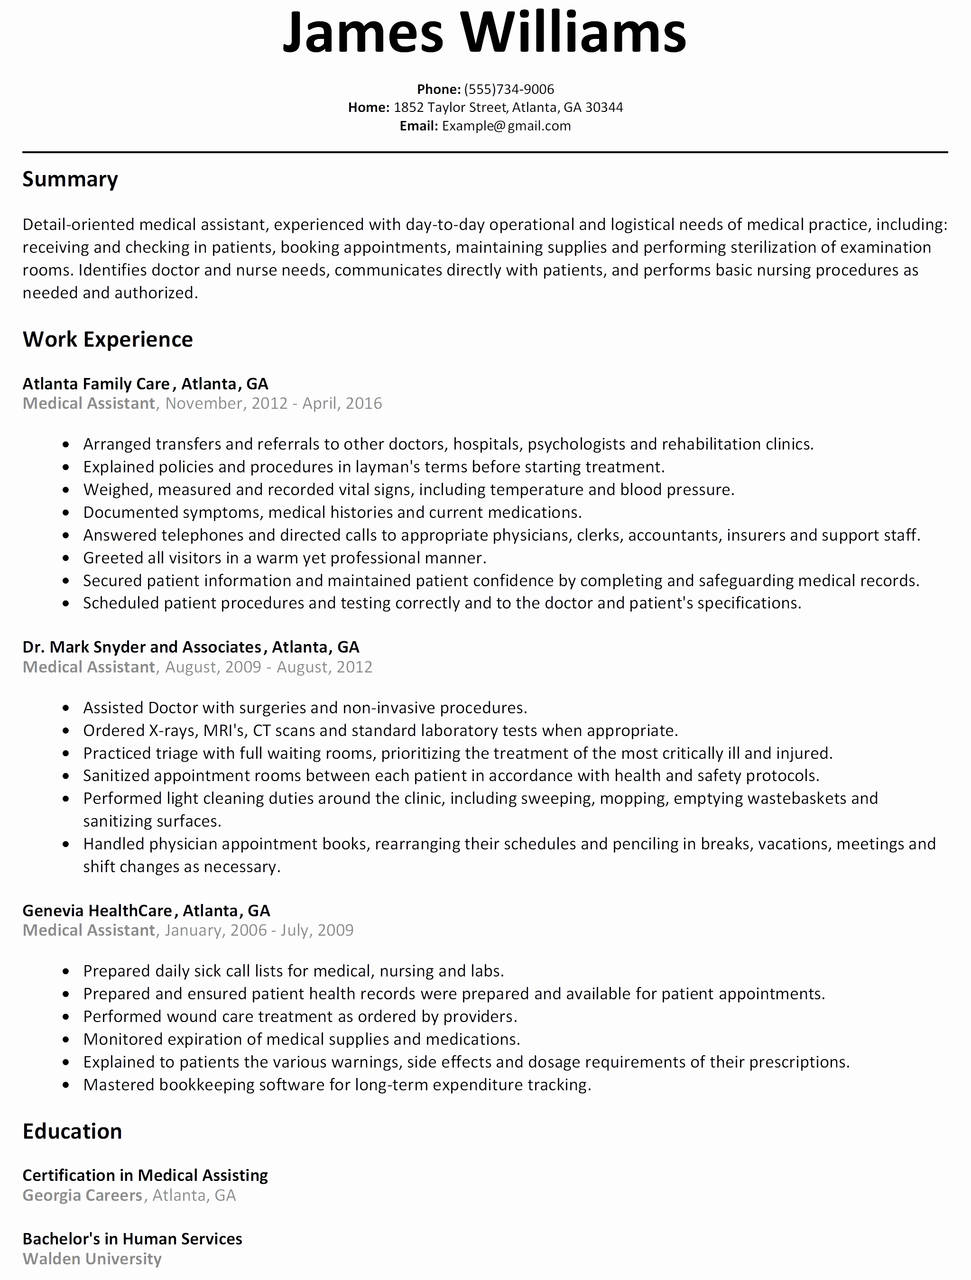 Ken Coleman Resume Template Pdf.8 Ken Coleman Resume Template Samples Resume Database Template